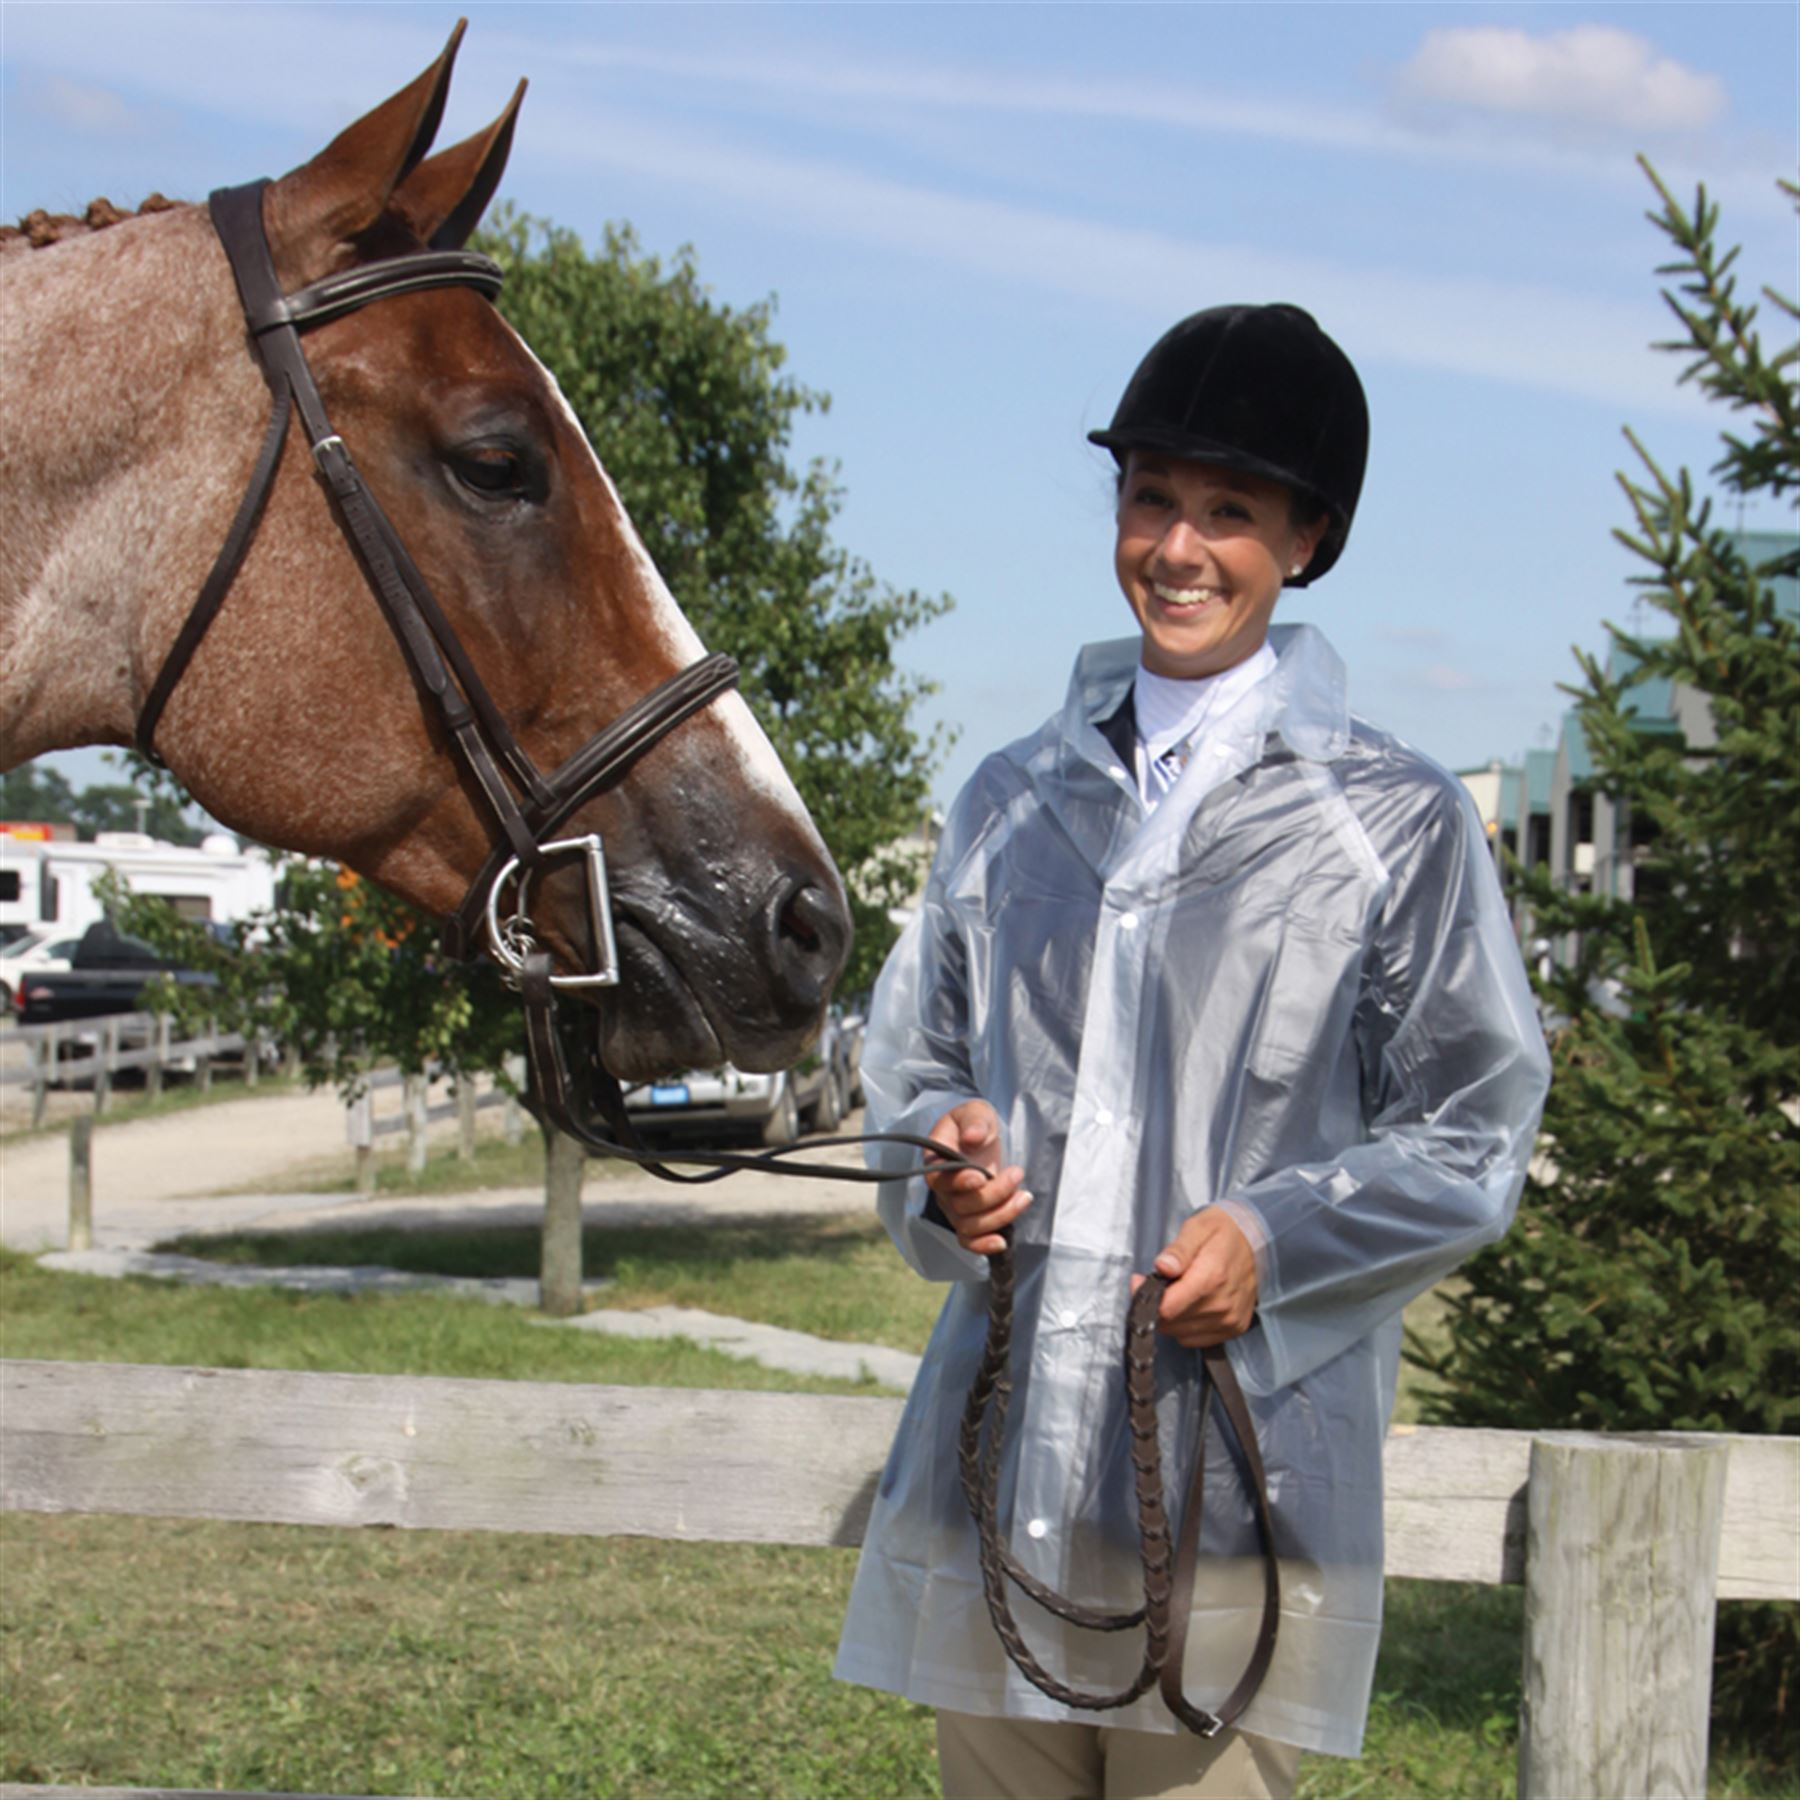 Clear Rain Coat 3 4 Length In Jackets At Schneider Saddlery